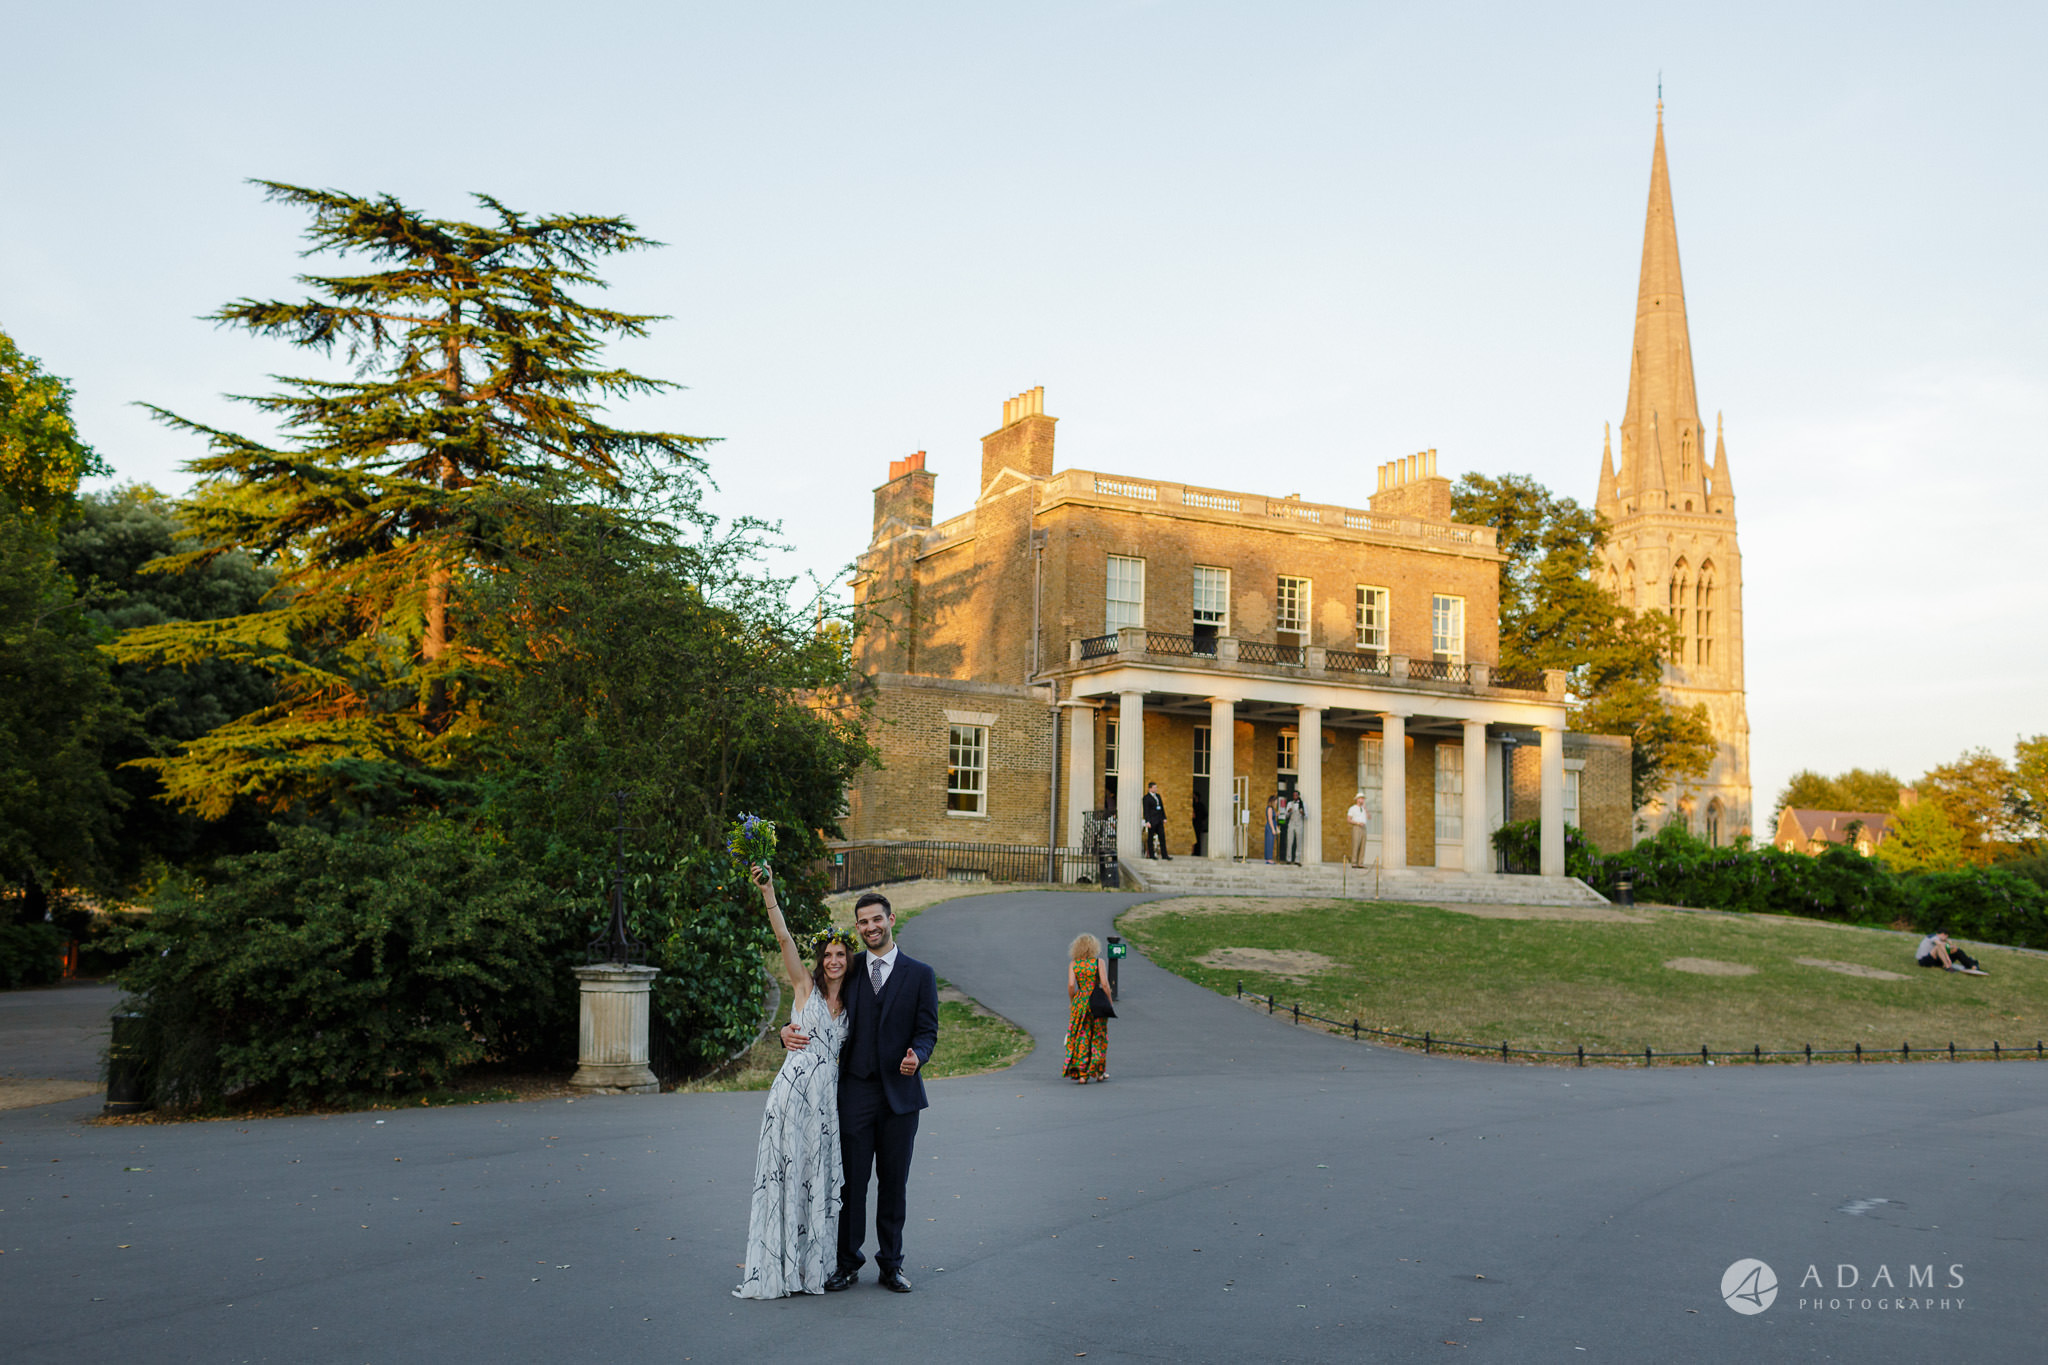 Clissold house wedding bride and groom in front of the Clissold house